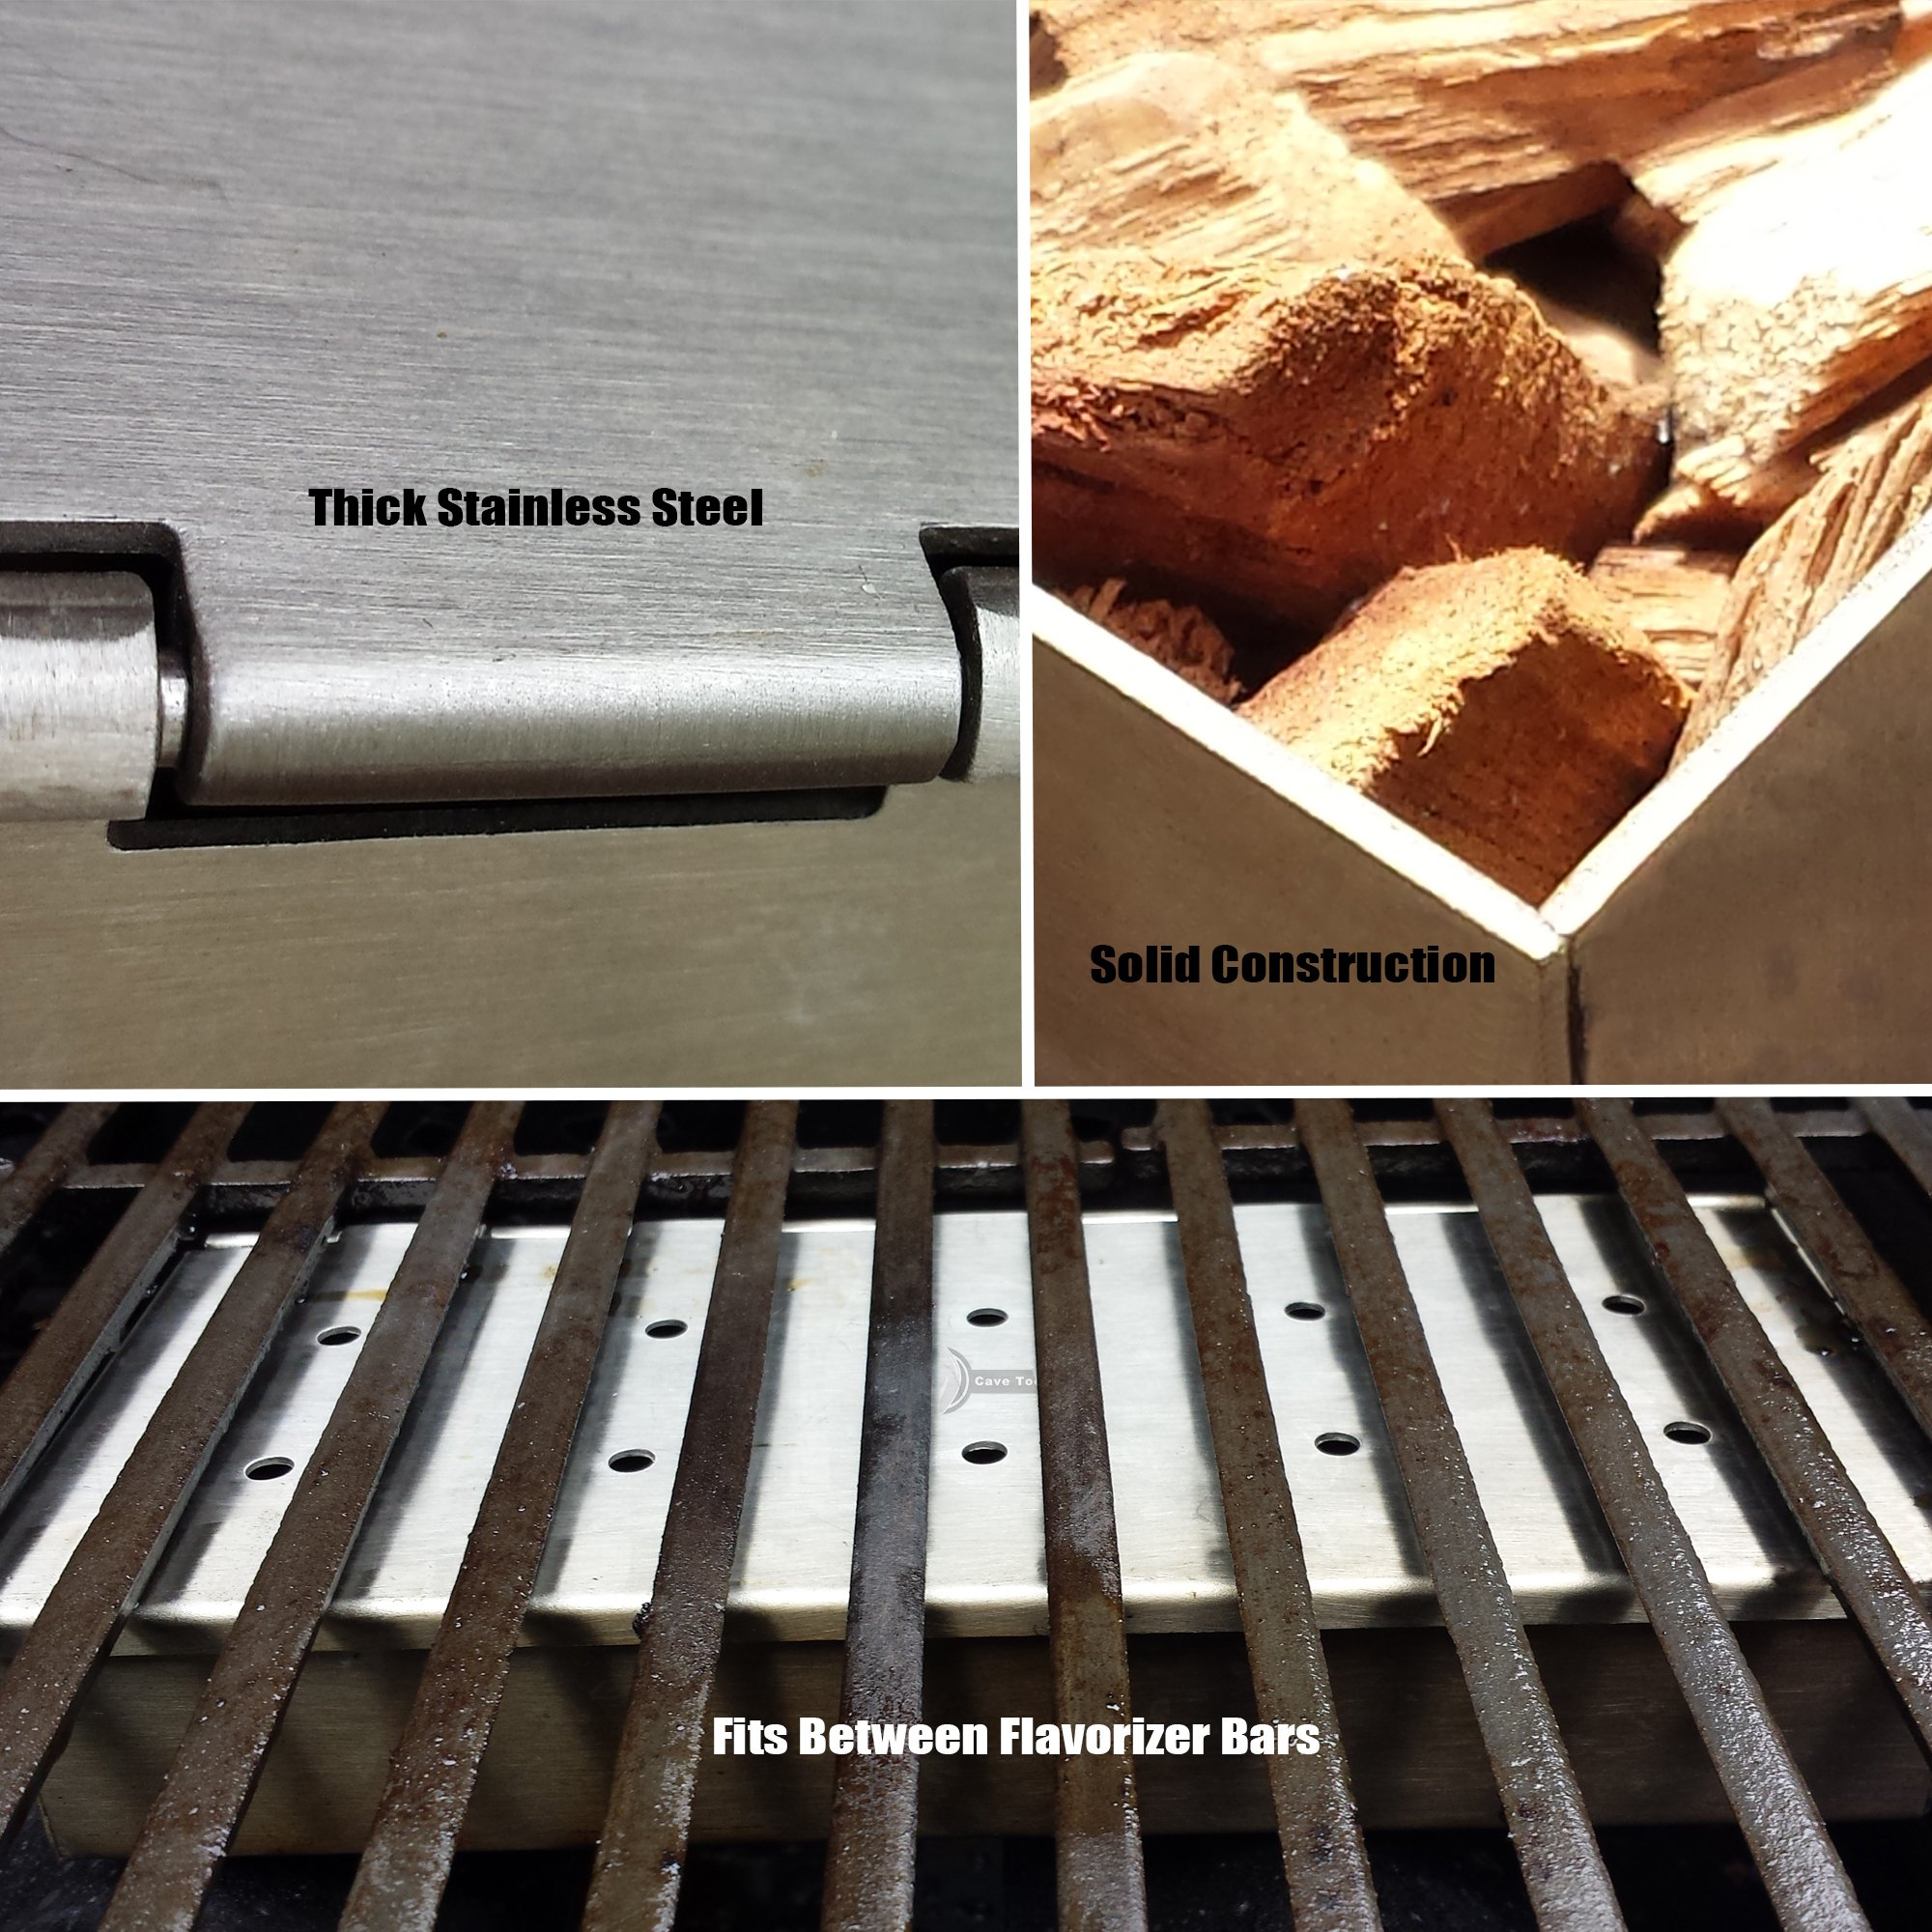 Tenderizer Mallet + Smoker Box for BBQ Grill Wood Chips - 25% Thicker Stainless Steel Won't Warp - Charcoal & Gas Barbecue Meat Smoking Hinged Lid - Grilling Accessories Gift for Dad by Cave Tools (Image #3)